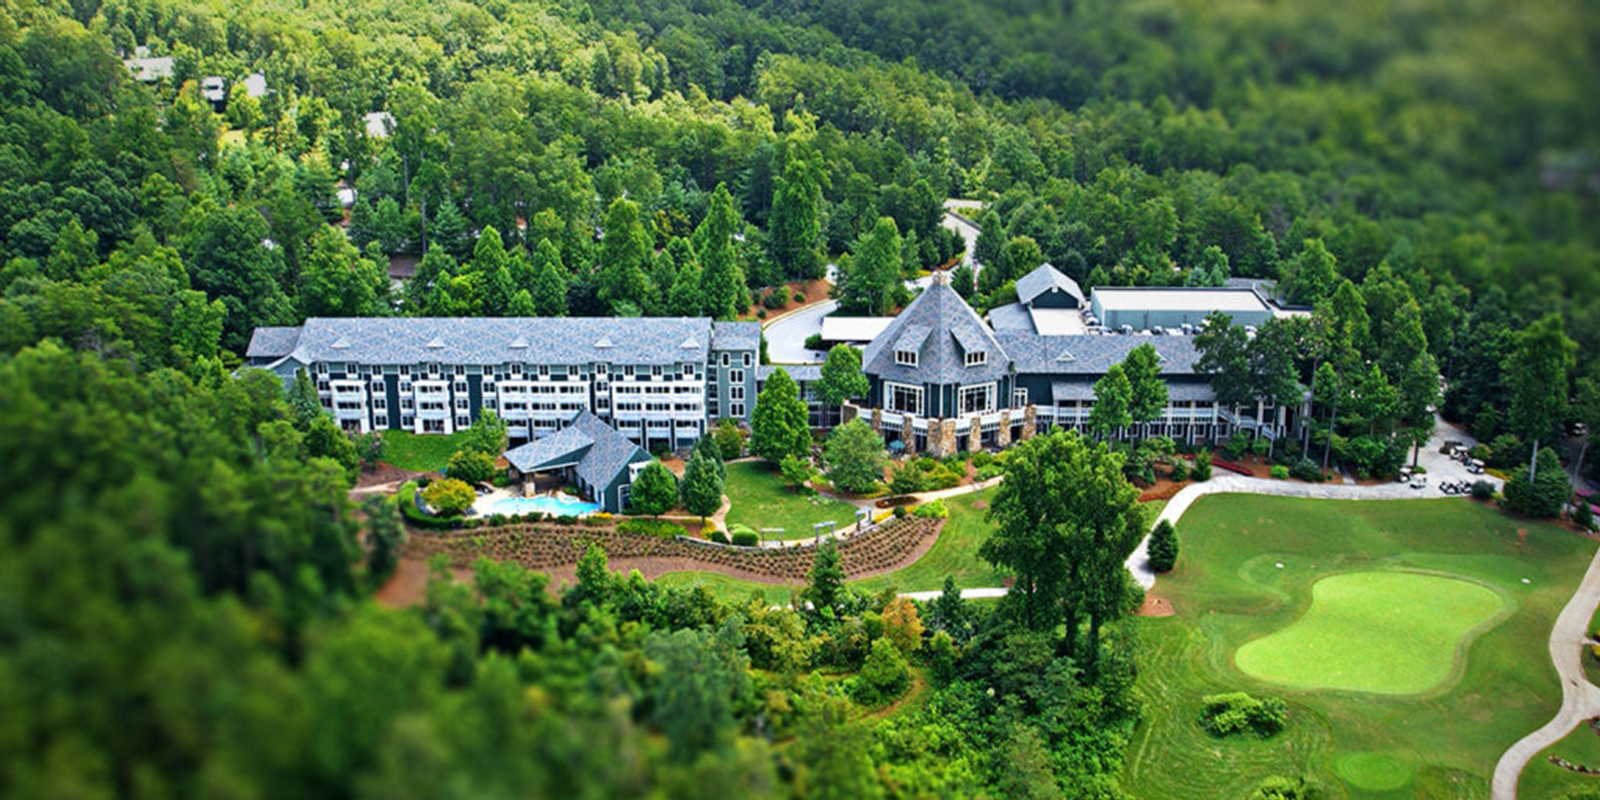 brasstown valley resort spabrasstown valley resort spa young